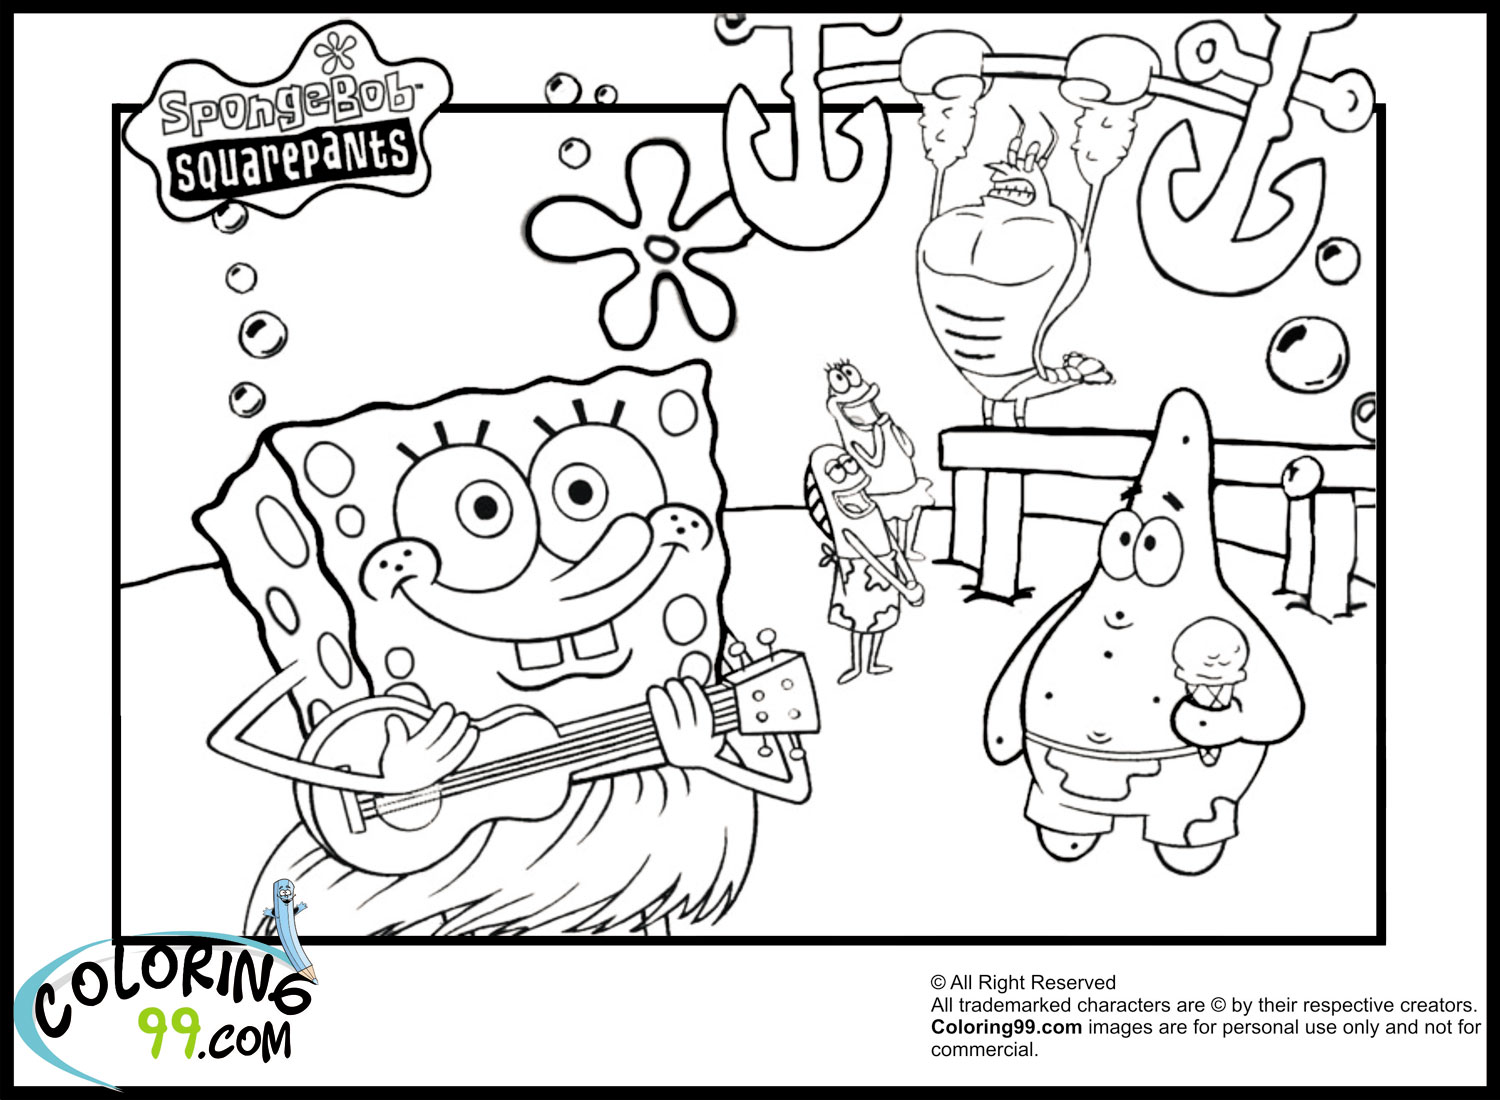 spongebob coloring pages minister coloring